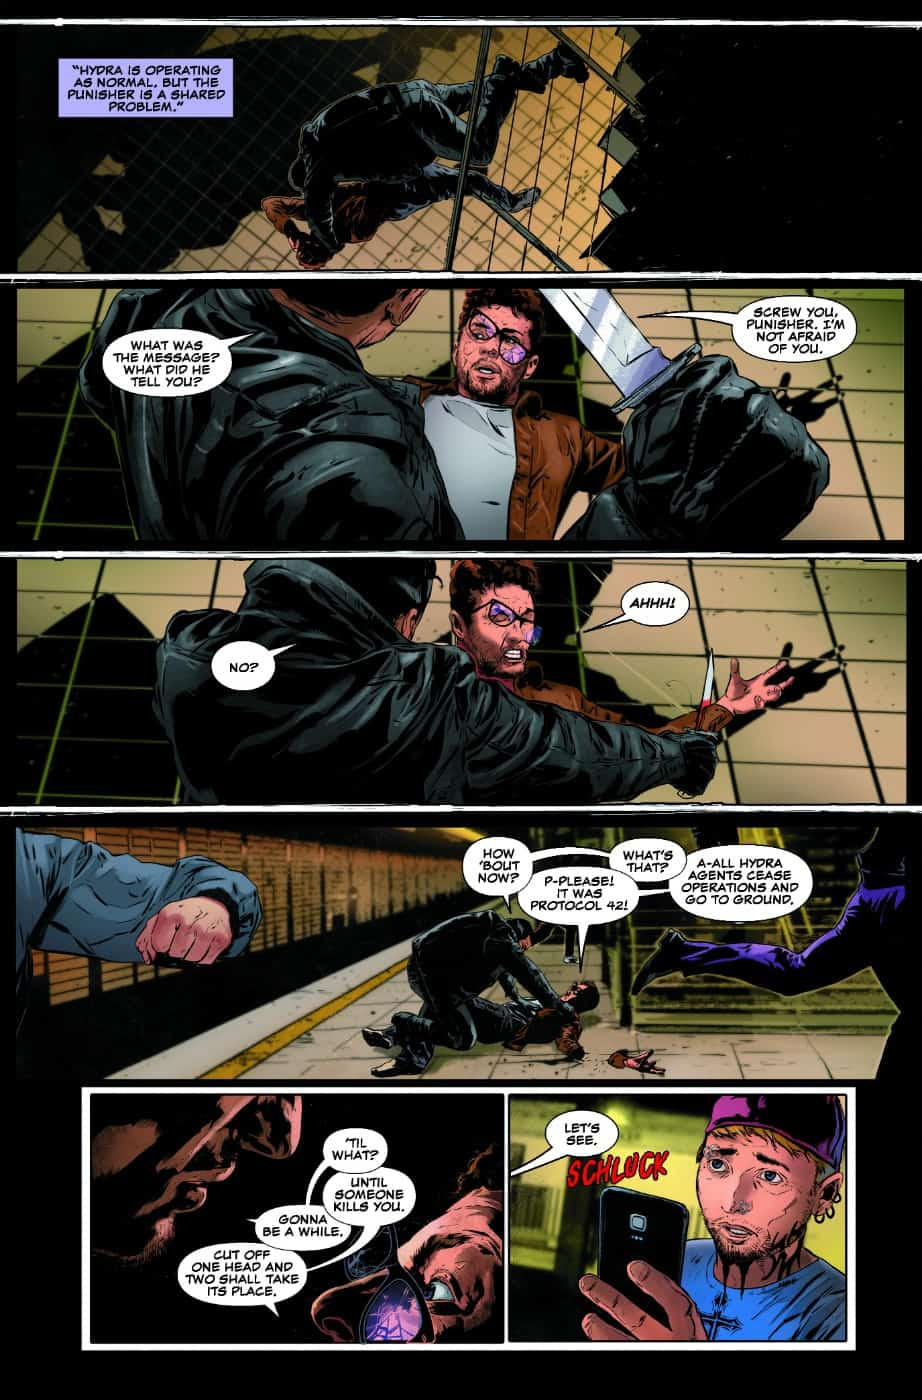 THE PUNISHER #2 page 7